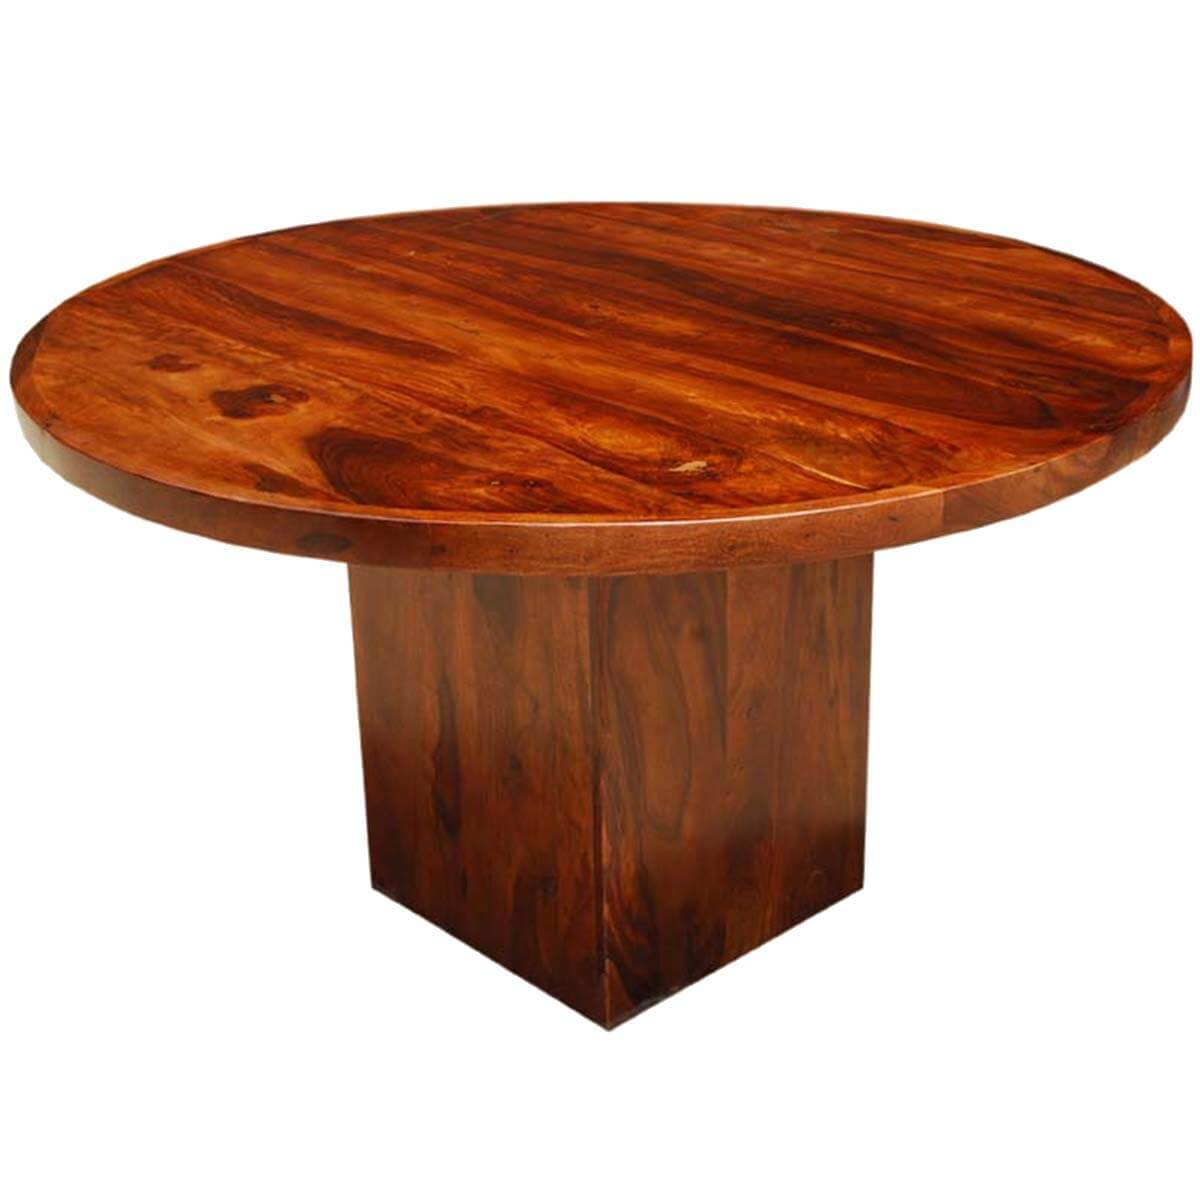 Solid wood rustic round dining table w square pedestal for Solid wood round tables dining